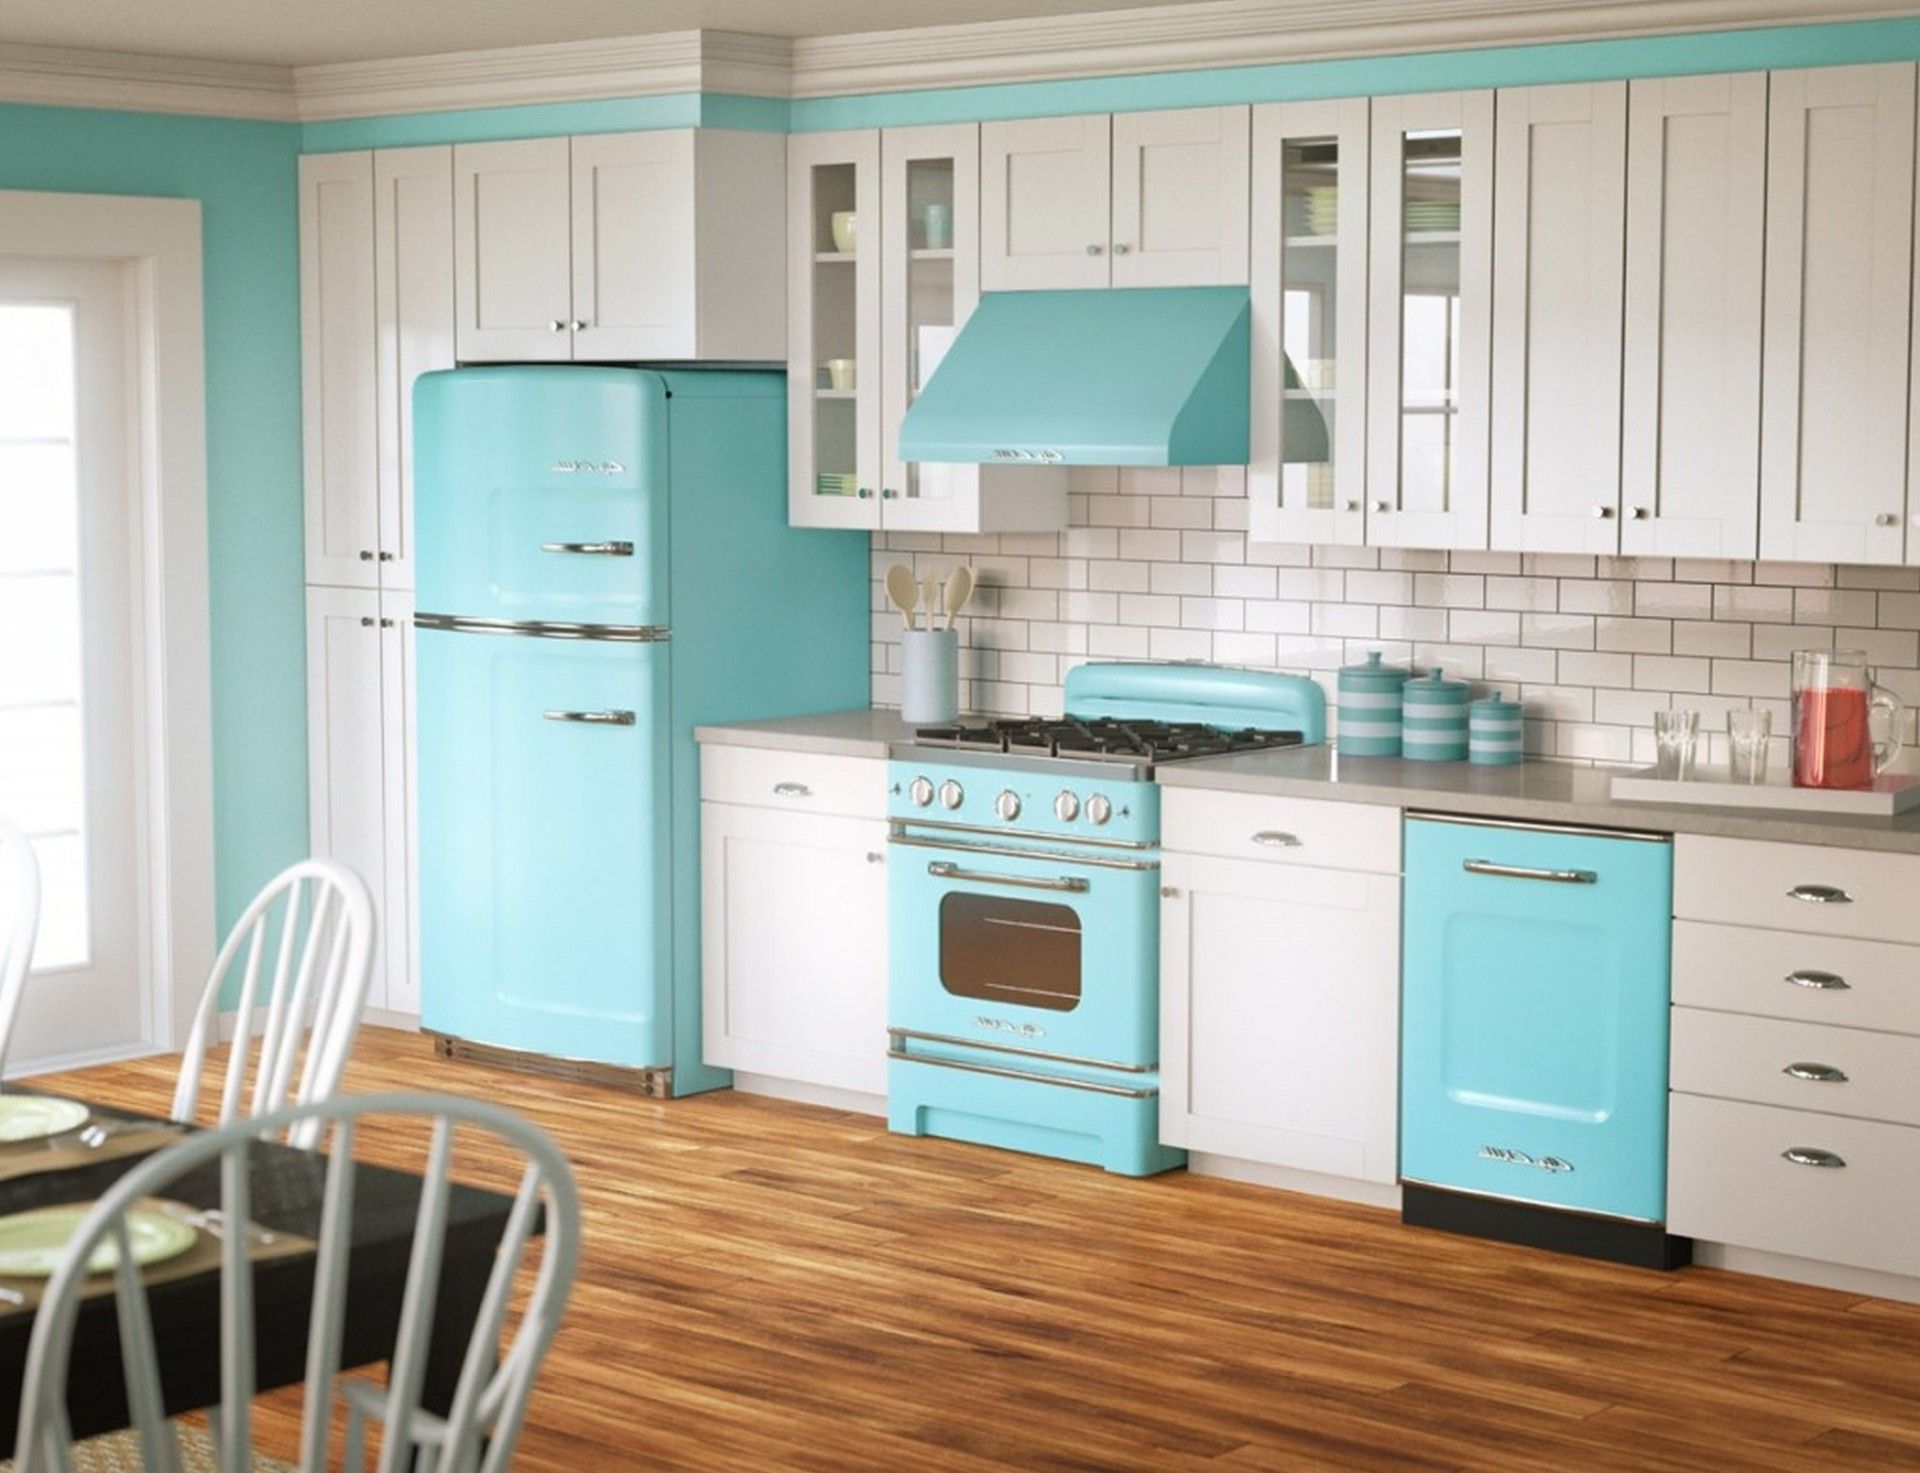 Awesome ideas for painting kitchen cabinets pictures from hgtv ...